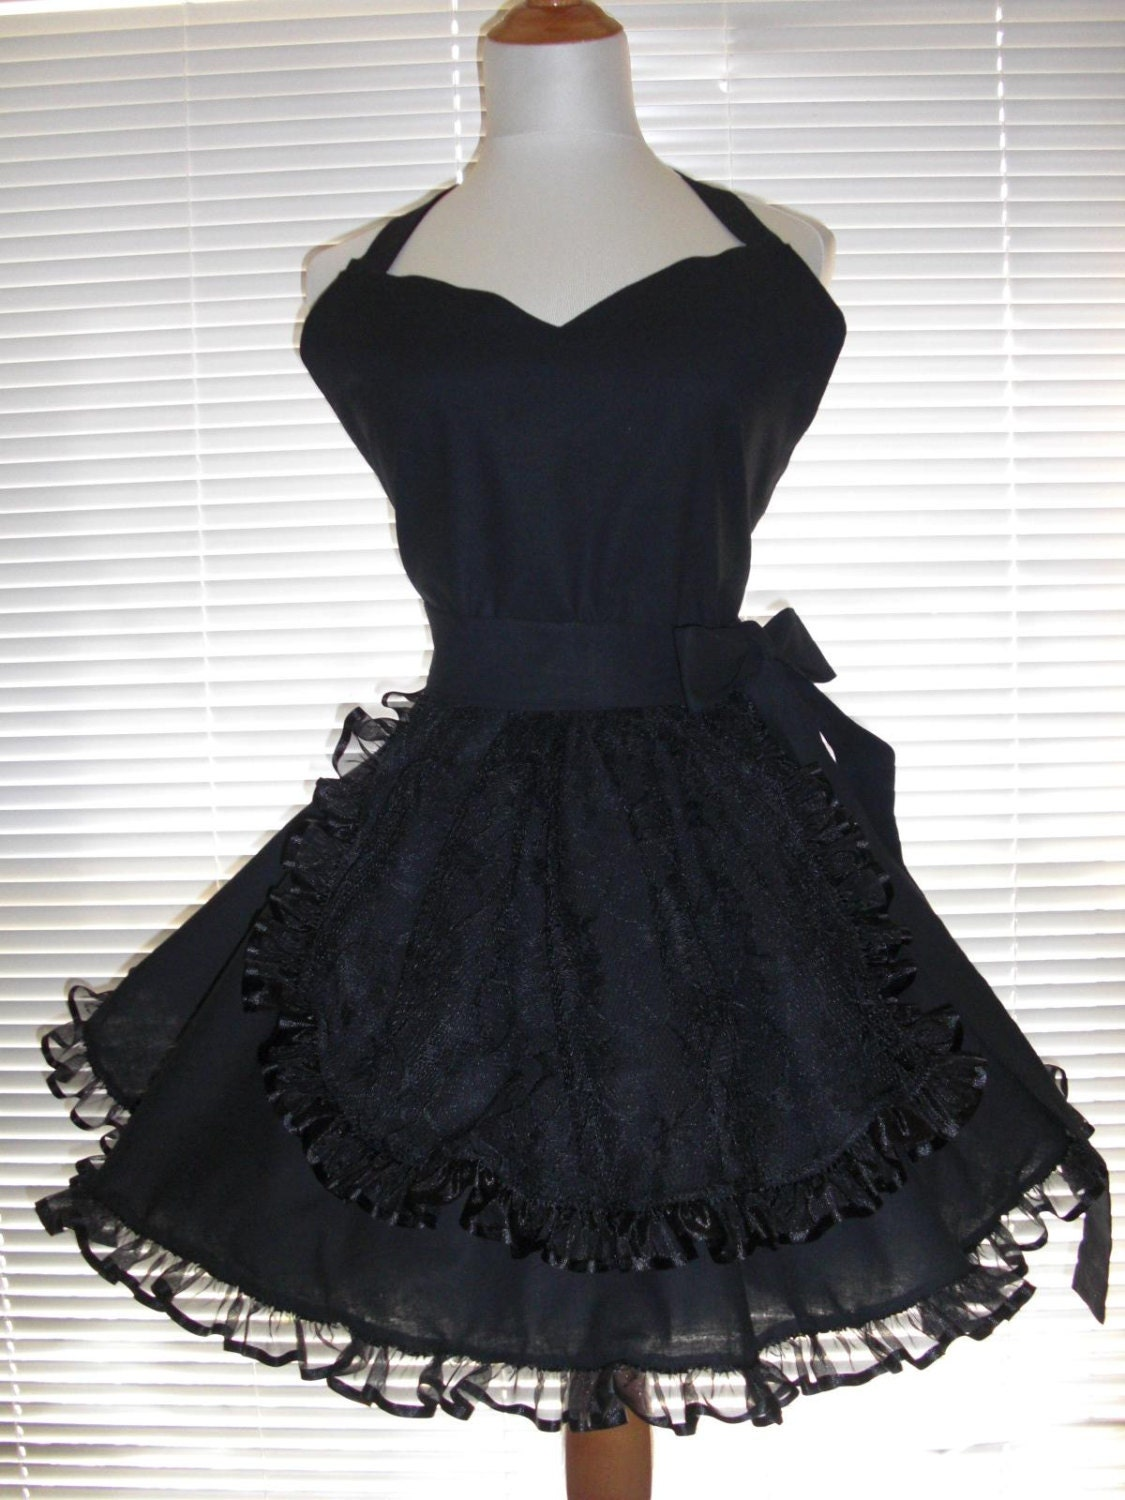 White apron skirt